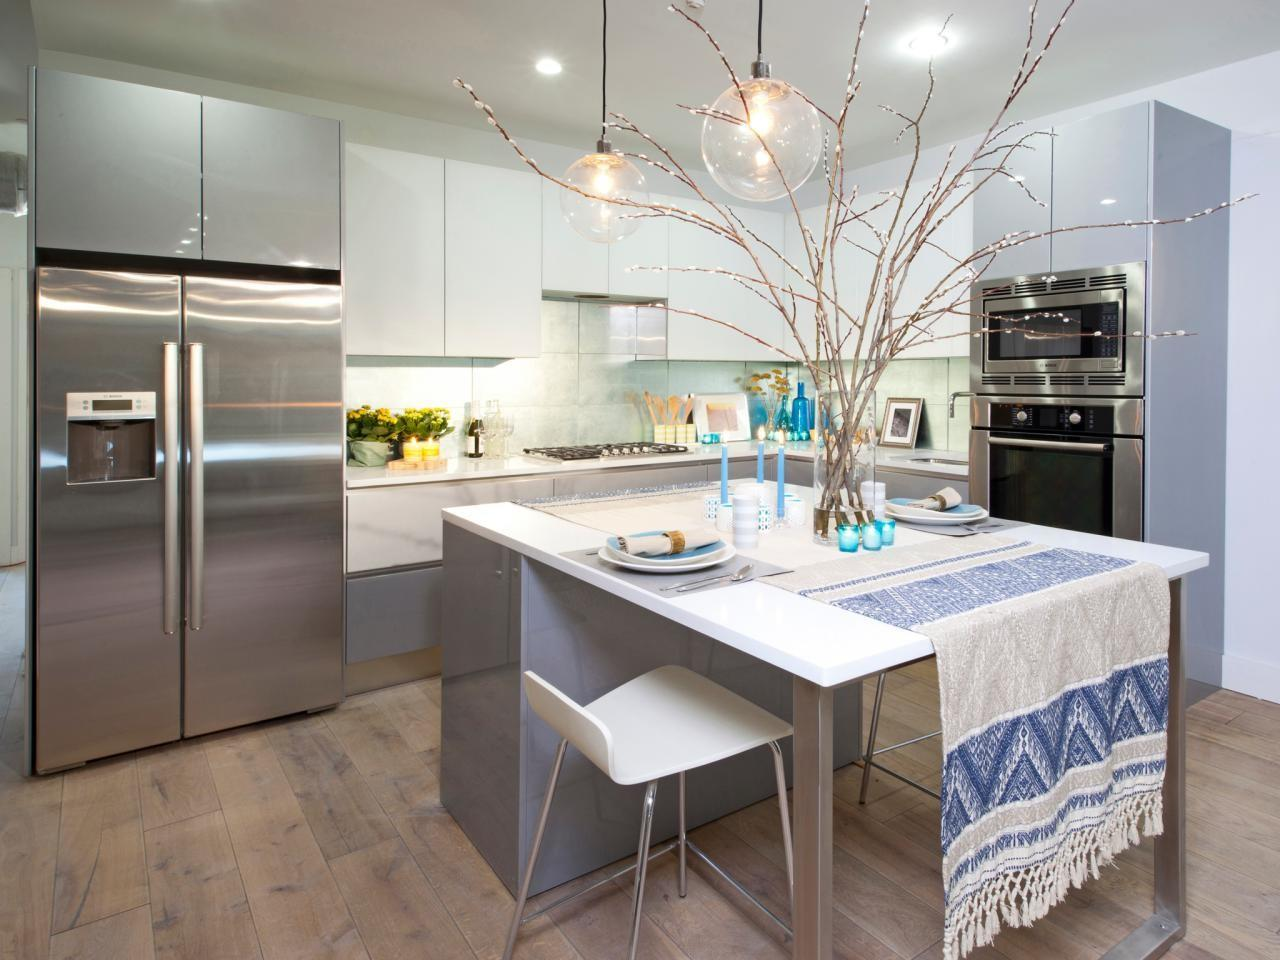 Kitchen Cabinets Should Replace Reface